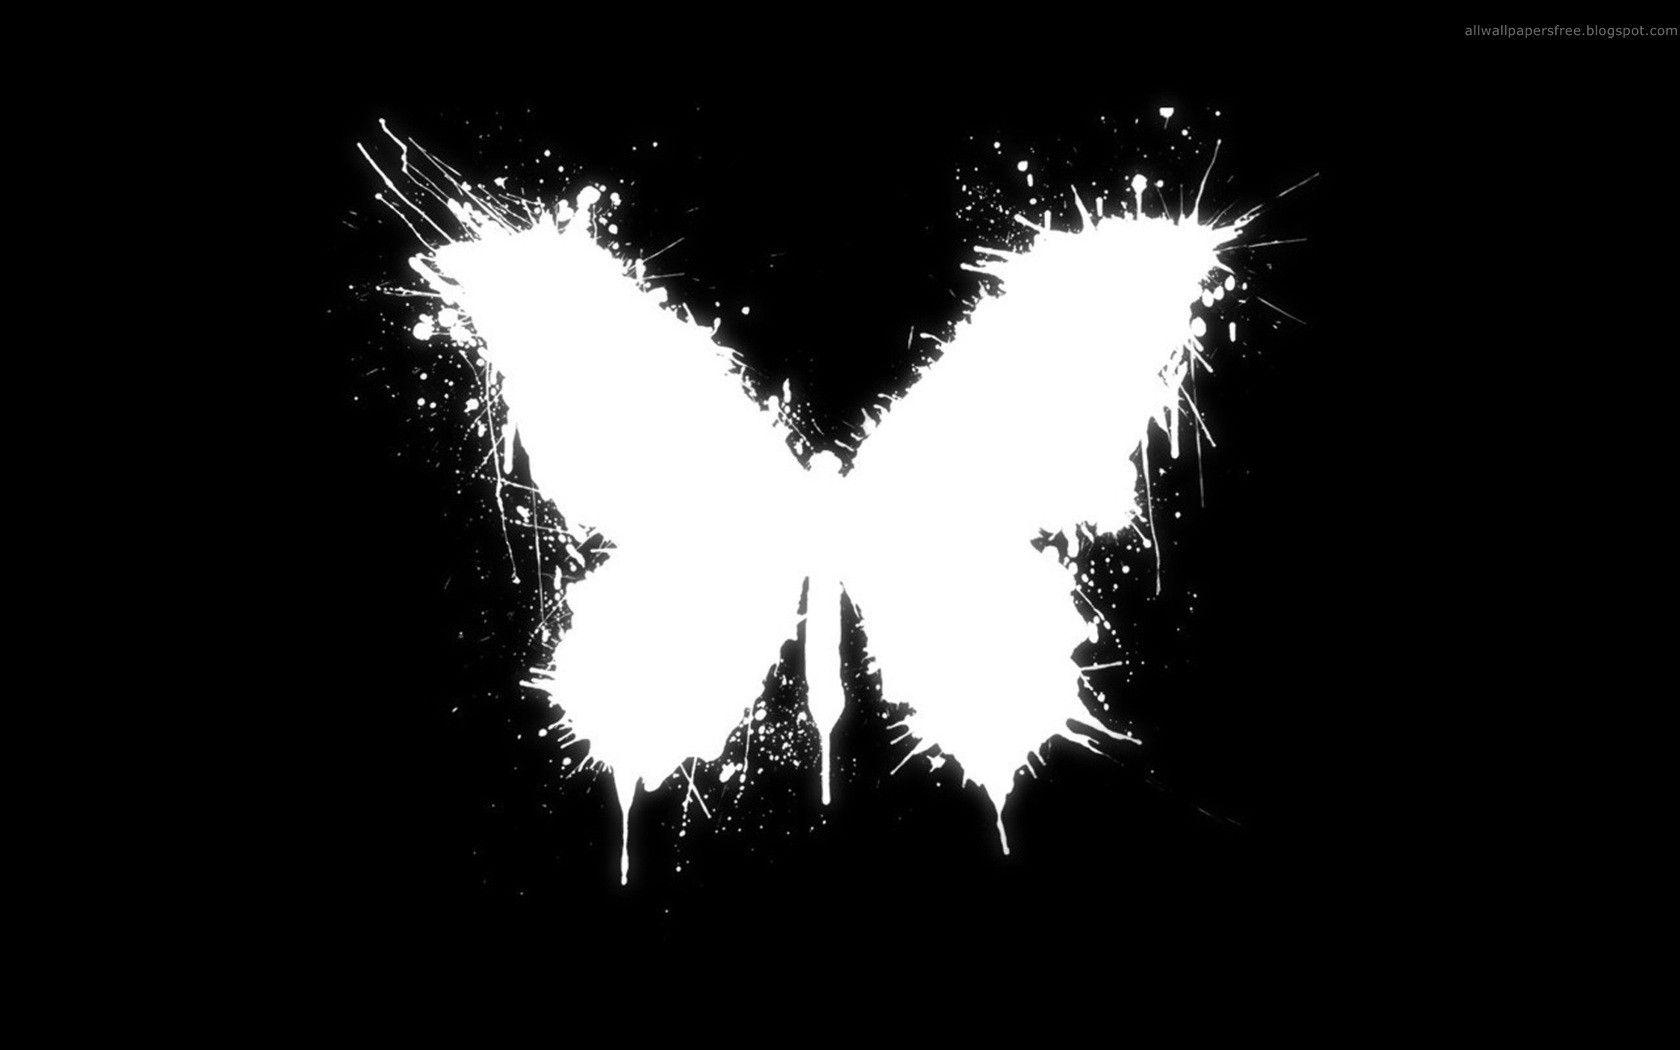 Black And White Butterfly Wallpapers Downloads 14892 Black And White Background Butterfly 1852584 Hd Wallpaper Backgrounds Download